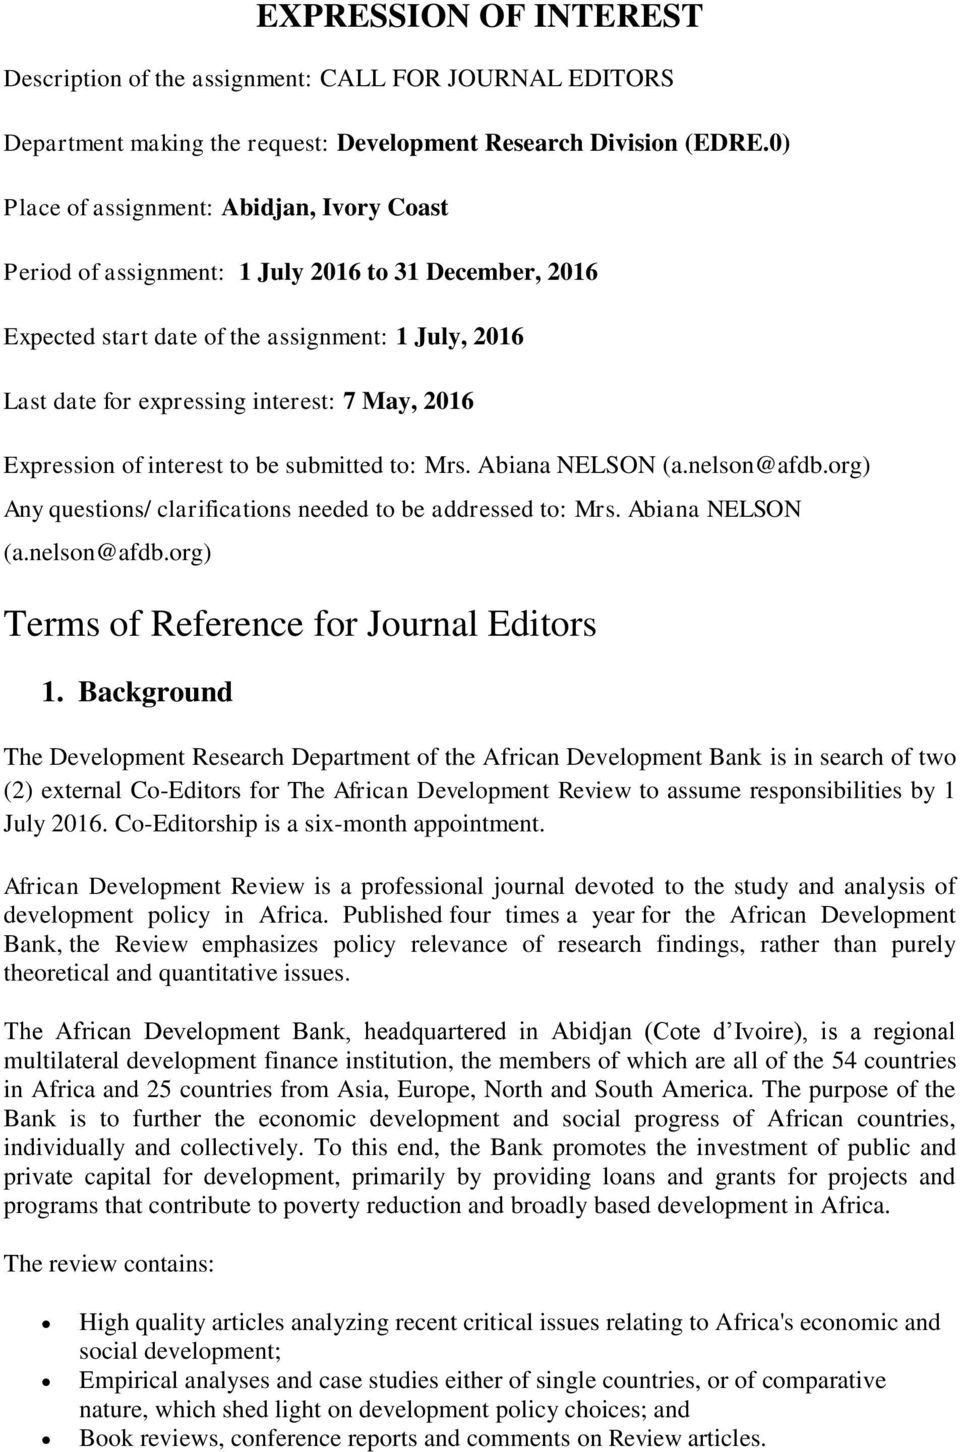 Expression of interest to be submitted to: Mrs. Abiana NELSON (a.nelson@afdb.org) Any questions/ clarifications needed to be addressed to: Mrs. Abiana NELSON (a.nelson@afdb.org) Terms of Reference for Journal Editors 1.